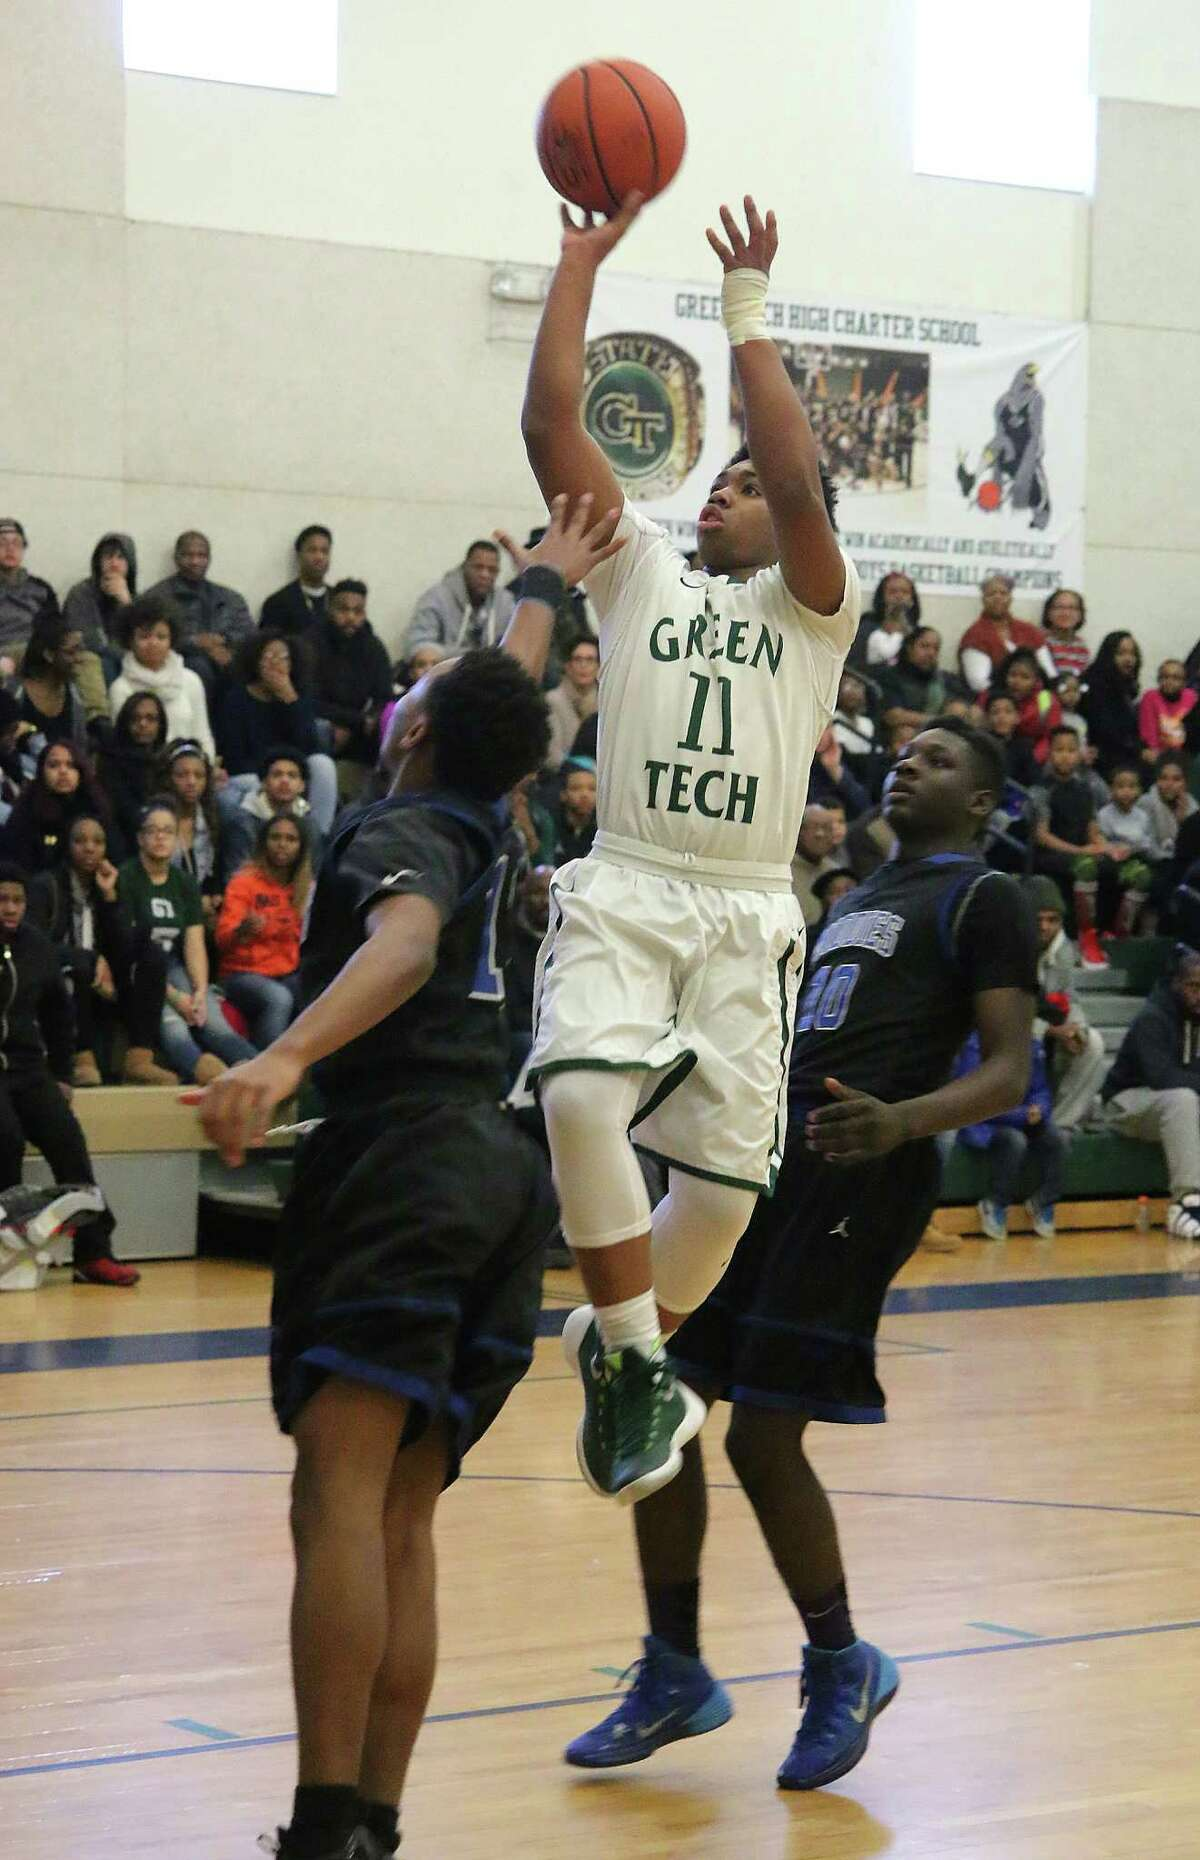 Marcus Friend goes up for two during Monday's varsity basketball matchup against Middletown at Green Tech High Charter School in Albany January 18, 2016. (Ed Burke / Special to the Times Union)